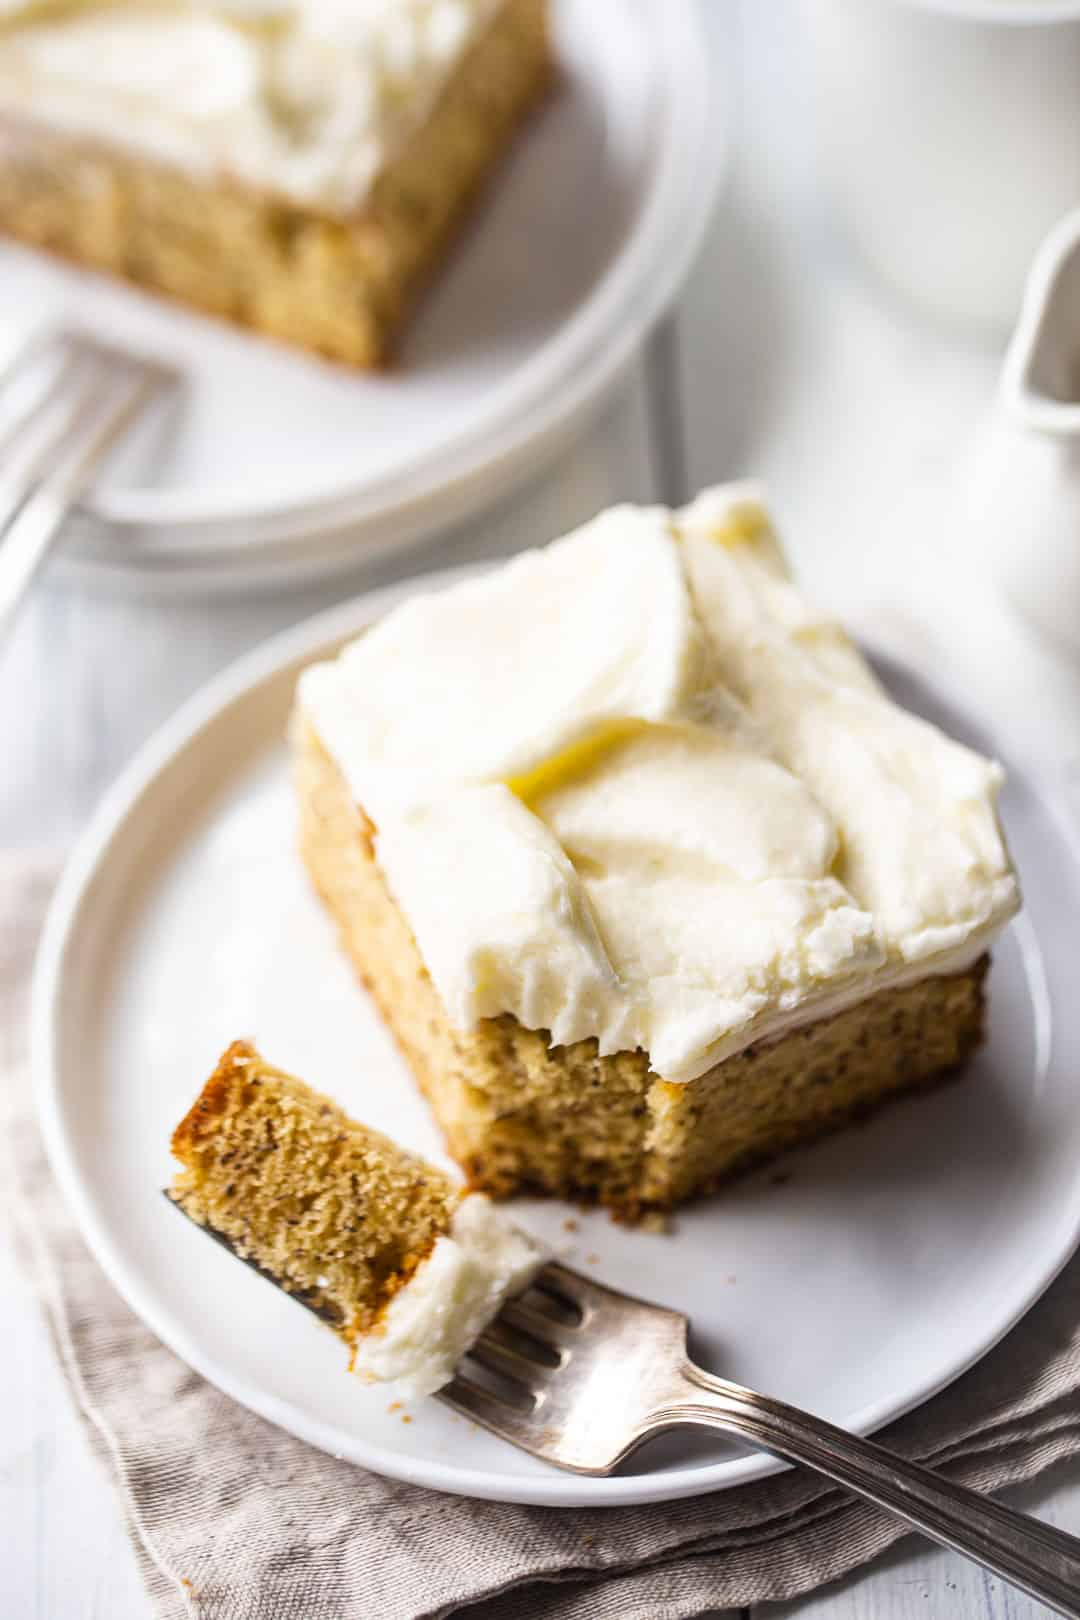 Moist banana cake cut into squares and served with cream cheese frosting.